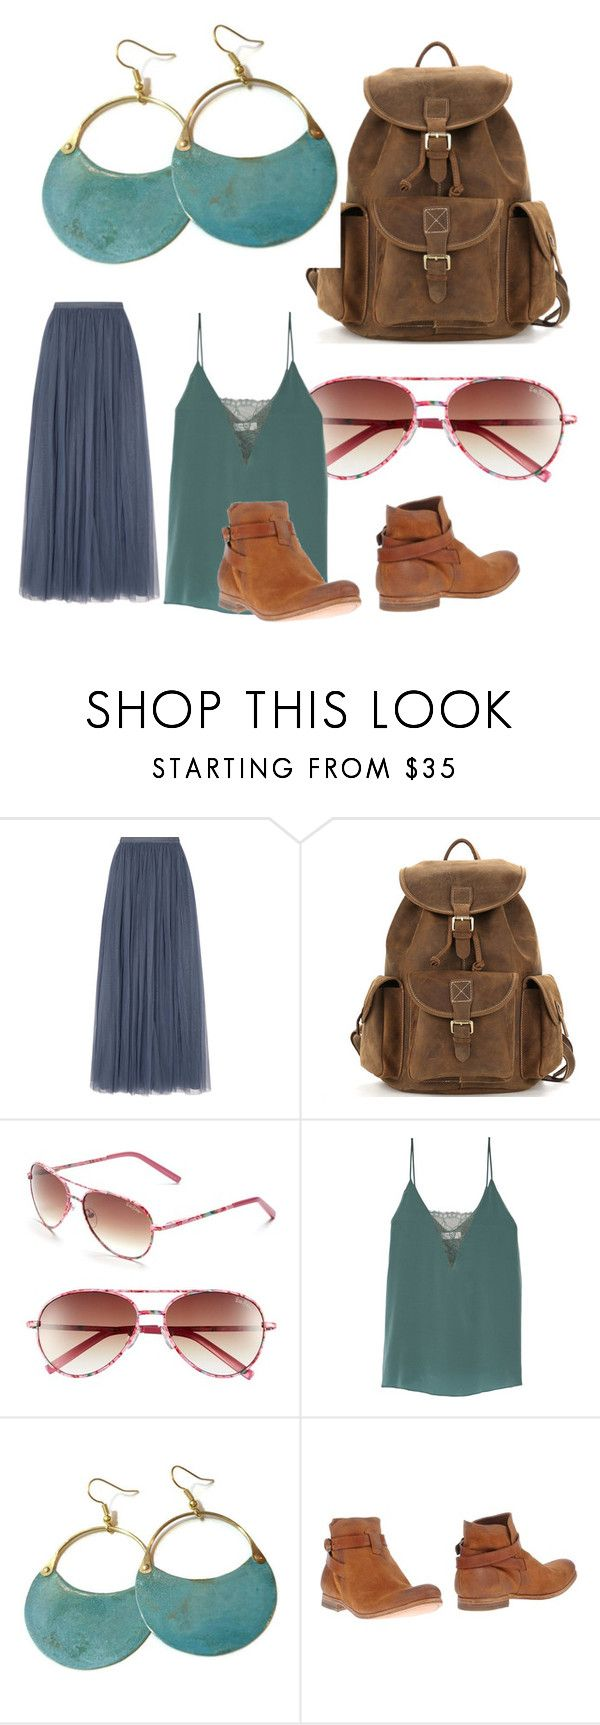 """Thursday night show"" by delladammusic ❤ liked on Polyvore featuring Needle & Thread, Lilly Pulitzer, Bailey 44 and n.d.c."